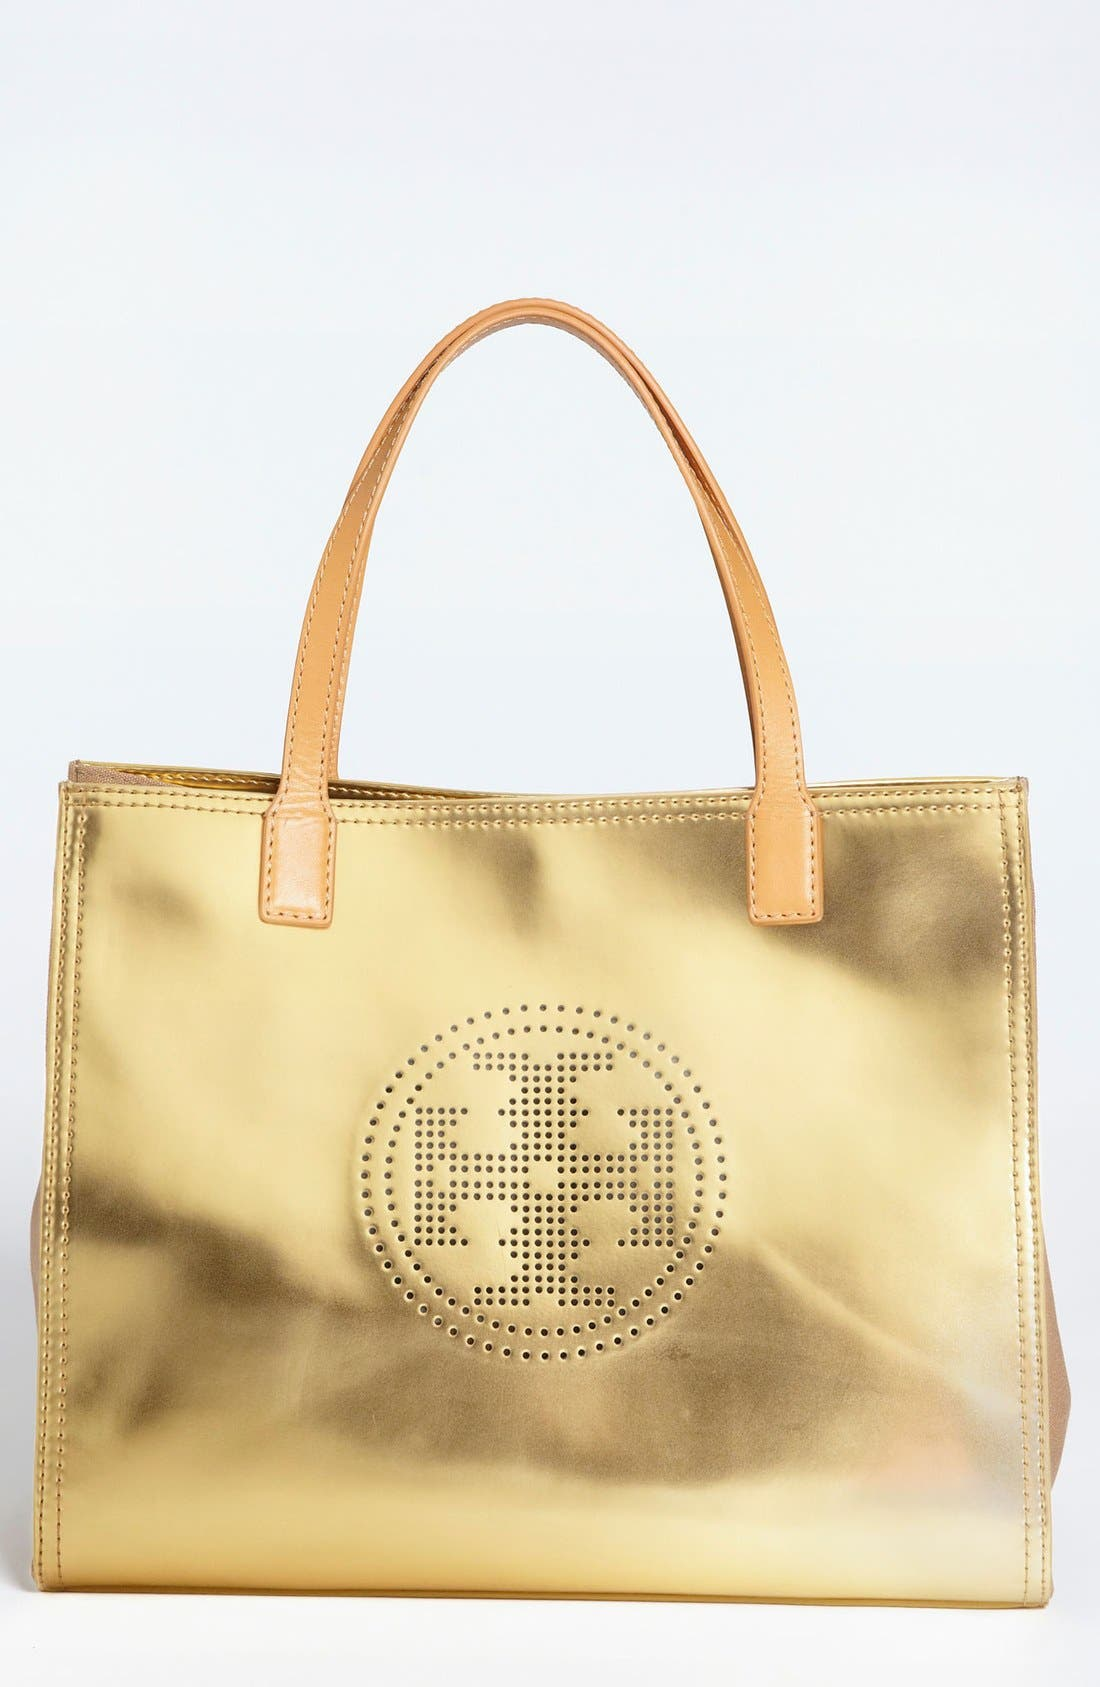 Alternate Image 1 Selected - Tory Burch 'Small' Perforated Logo Metallic Leather Tote